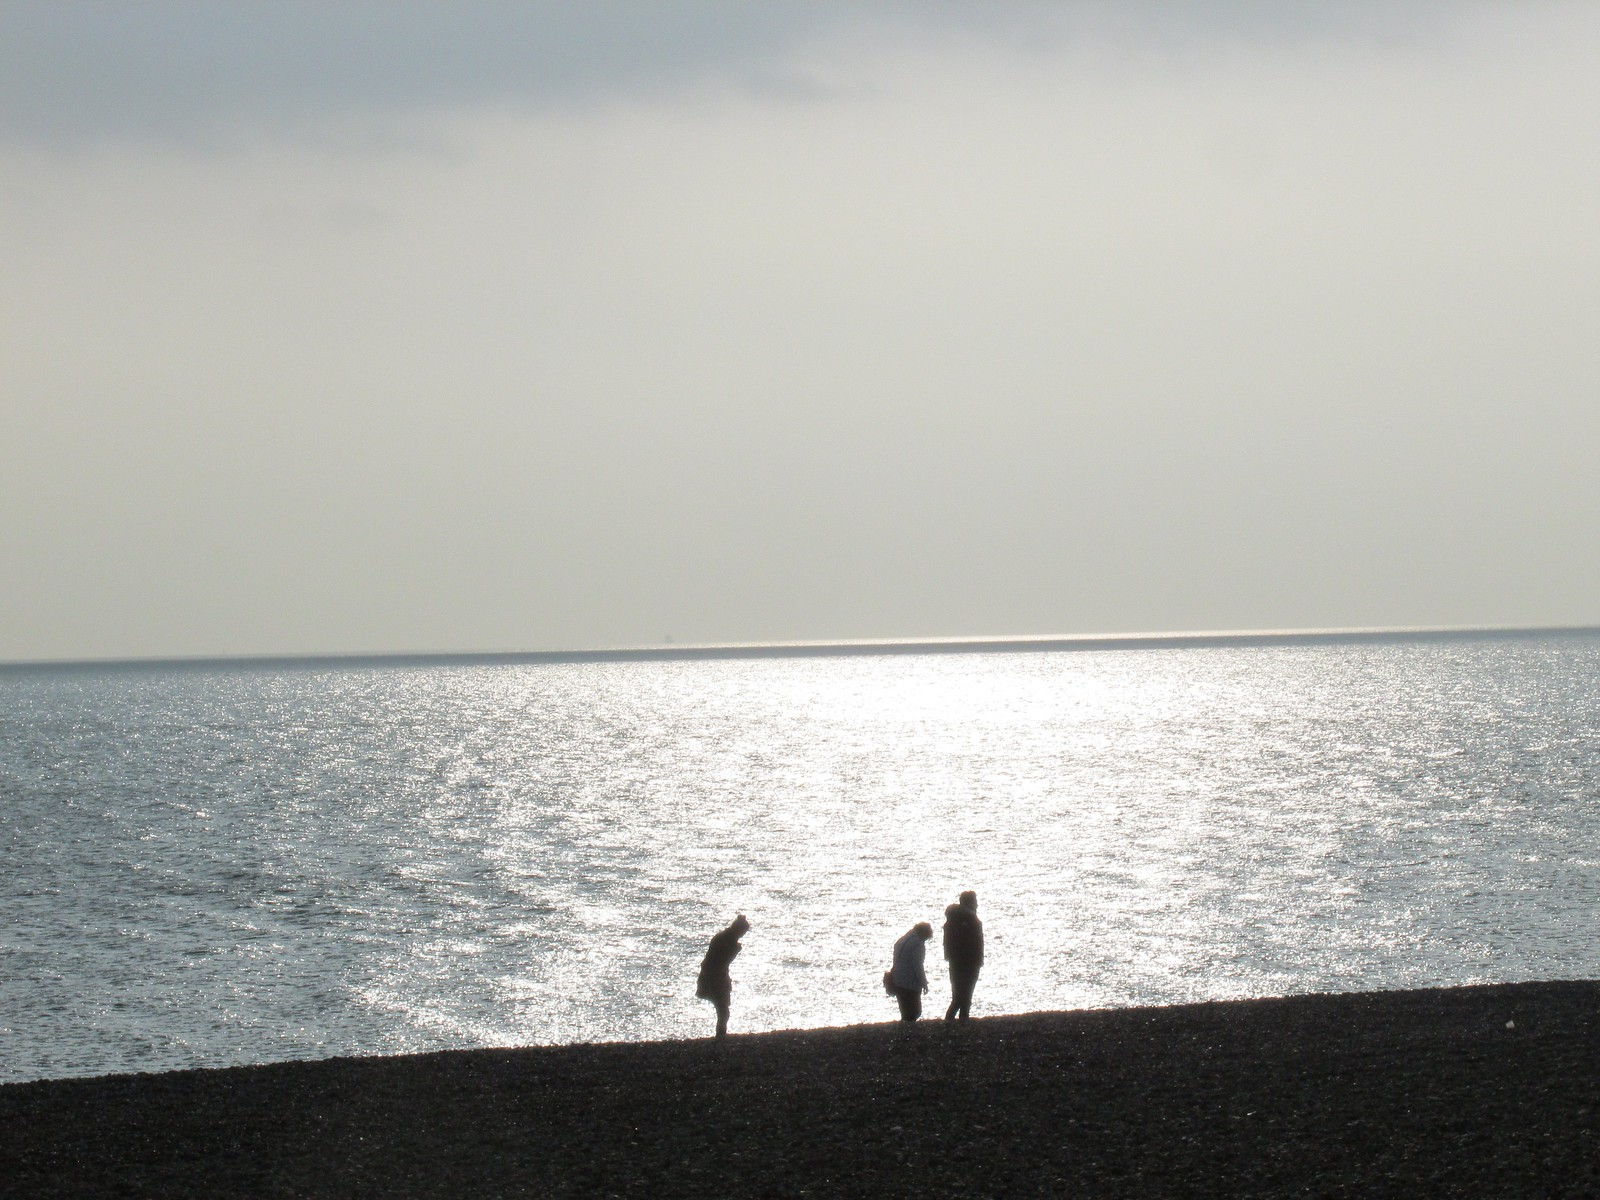 April 6, 2015: Glynde to Seaford Seaford beach